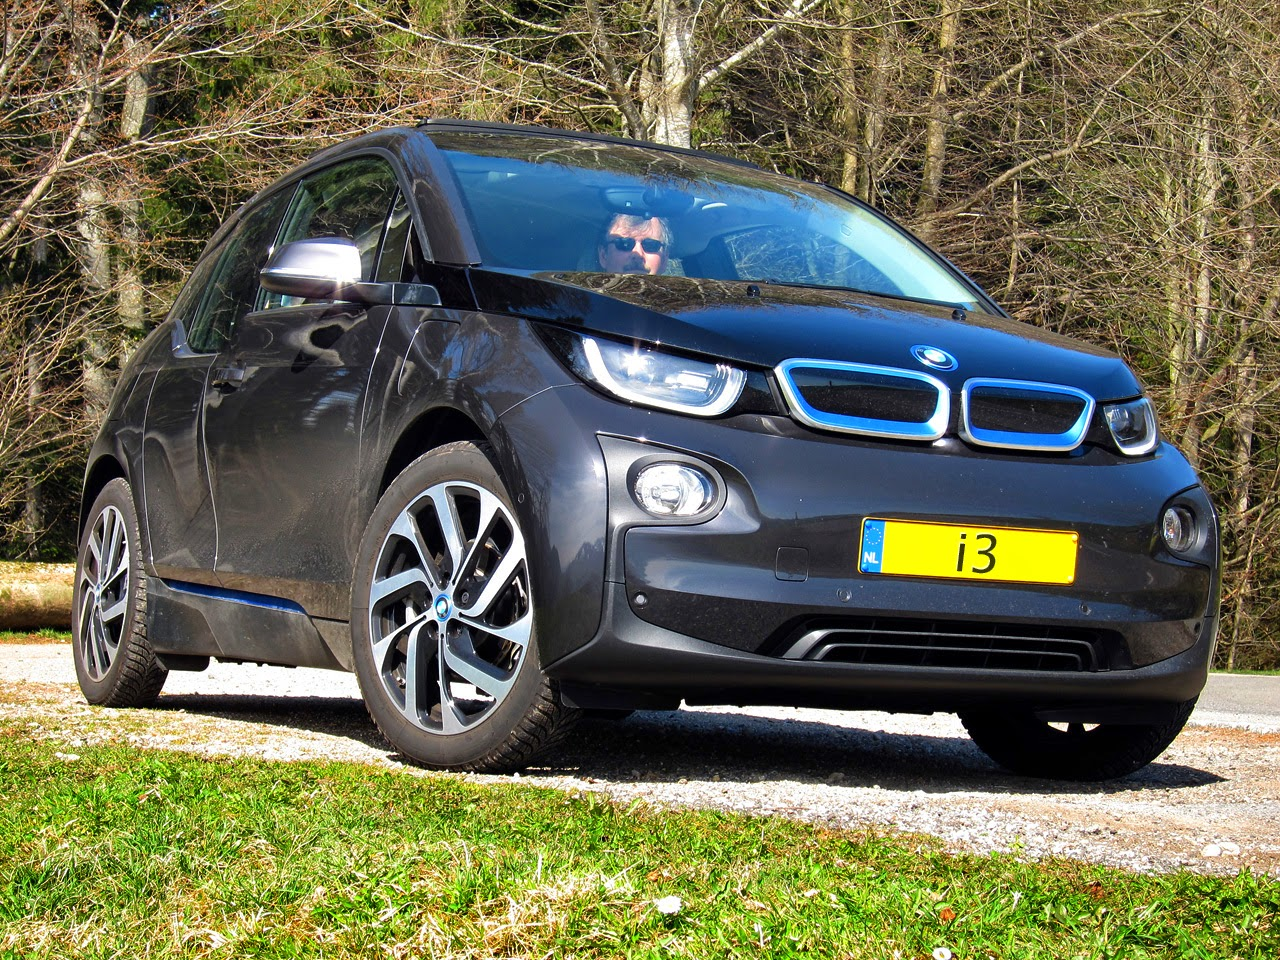 the electric bmw i3 bmw i3 rex european road trip. Black Bedroom Furniture Sets. Home Design Ideas